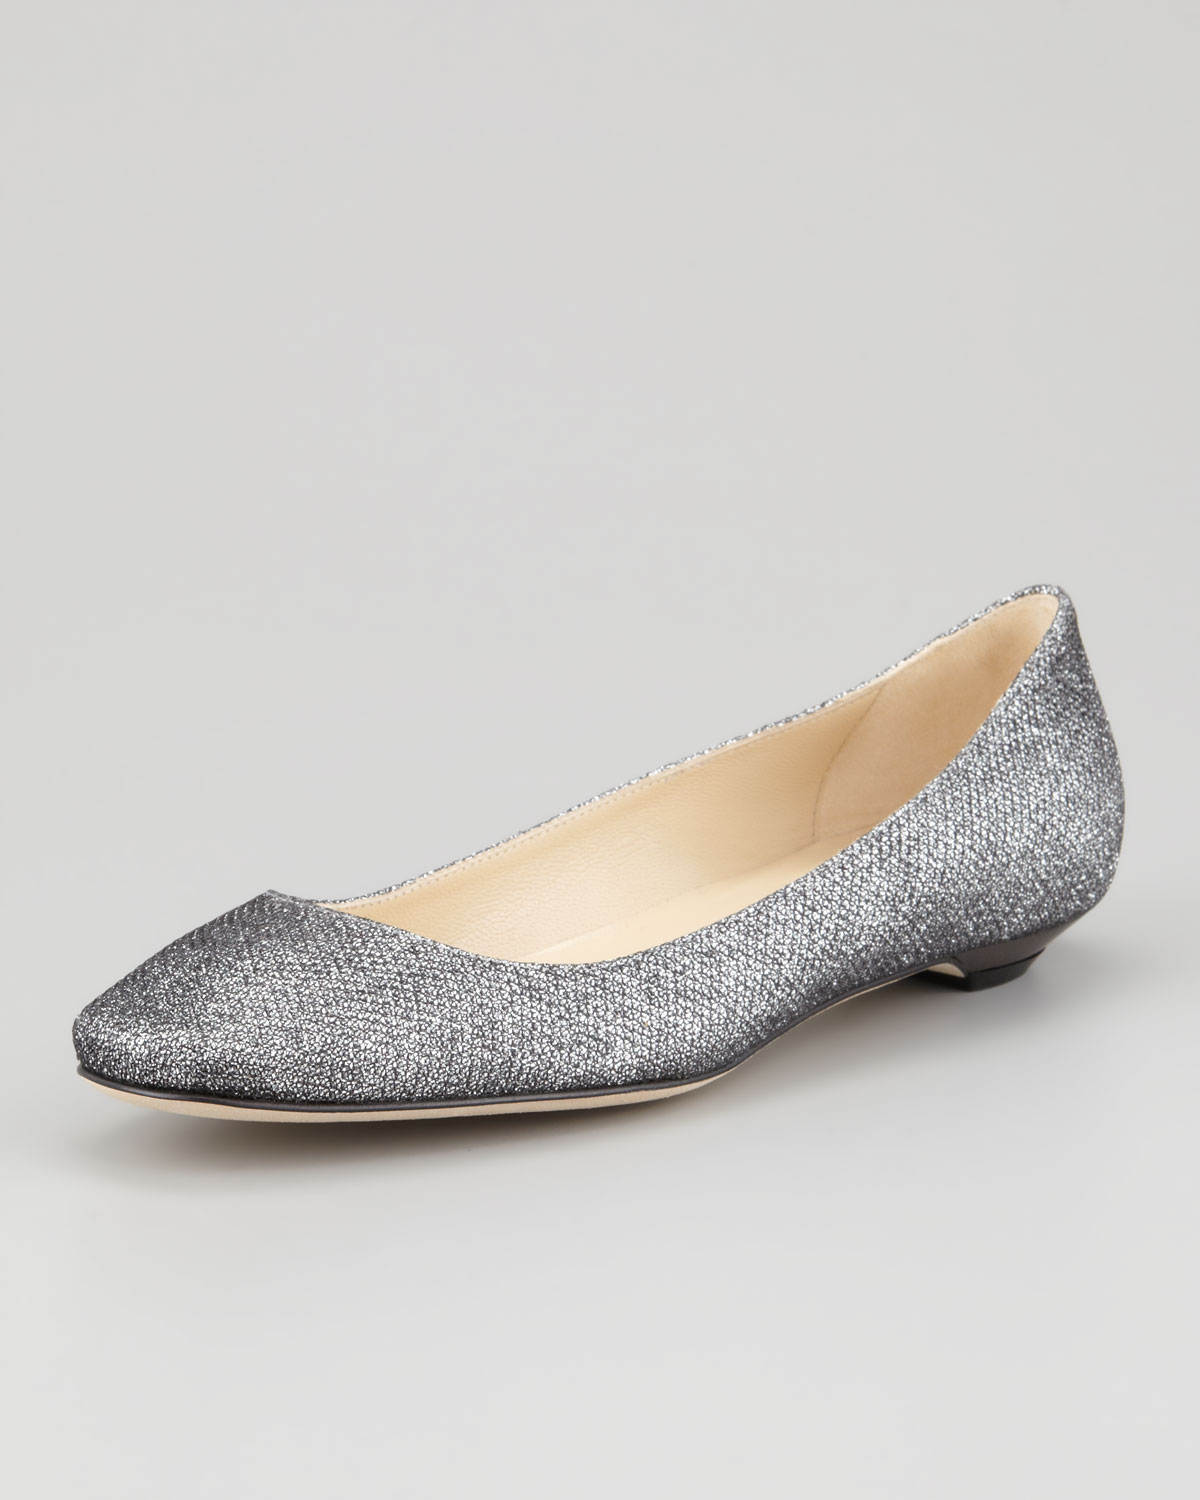 lyst jimmy choo finlay glittered ballerina flat anthracite in gray. Black Bedroom Furniture Sets. Home Design Ideas